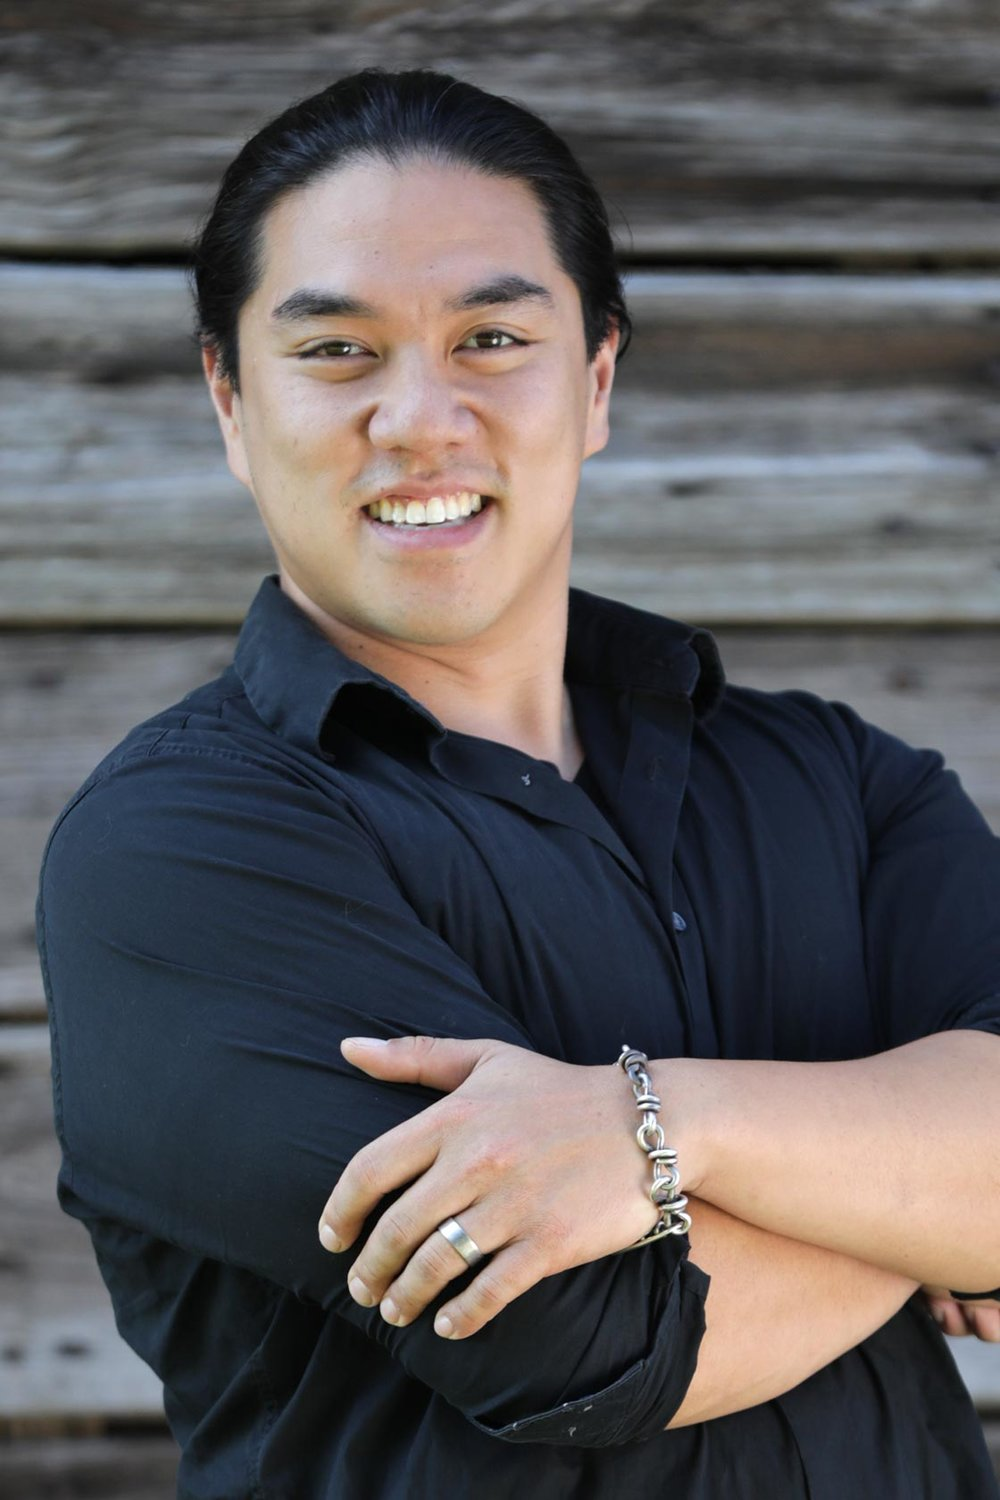 Anthony Tran  Creative Director    Over a decade of professional graphics, visual communication, video/audio production experience from local businesses to corporate work reaching domestic and international markets — specializing in marketing and creative leadership direction. An ambitious passion for the creative and production disciplines. Successfully directed and executed marketing strategies in a diverse set of business sectors including (but not limited to) health and wellness, software and technology, entertainment, industrial and manufacturing, food service, hospitality, and sales.